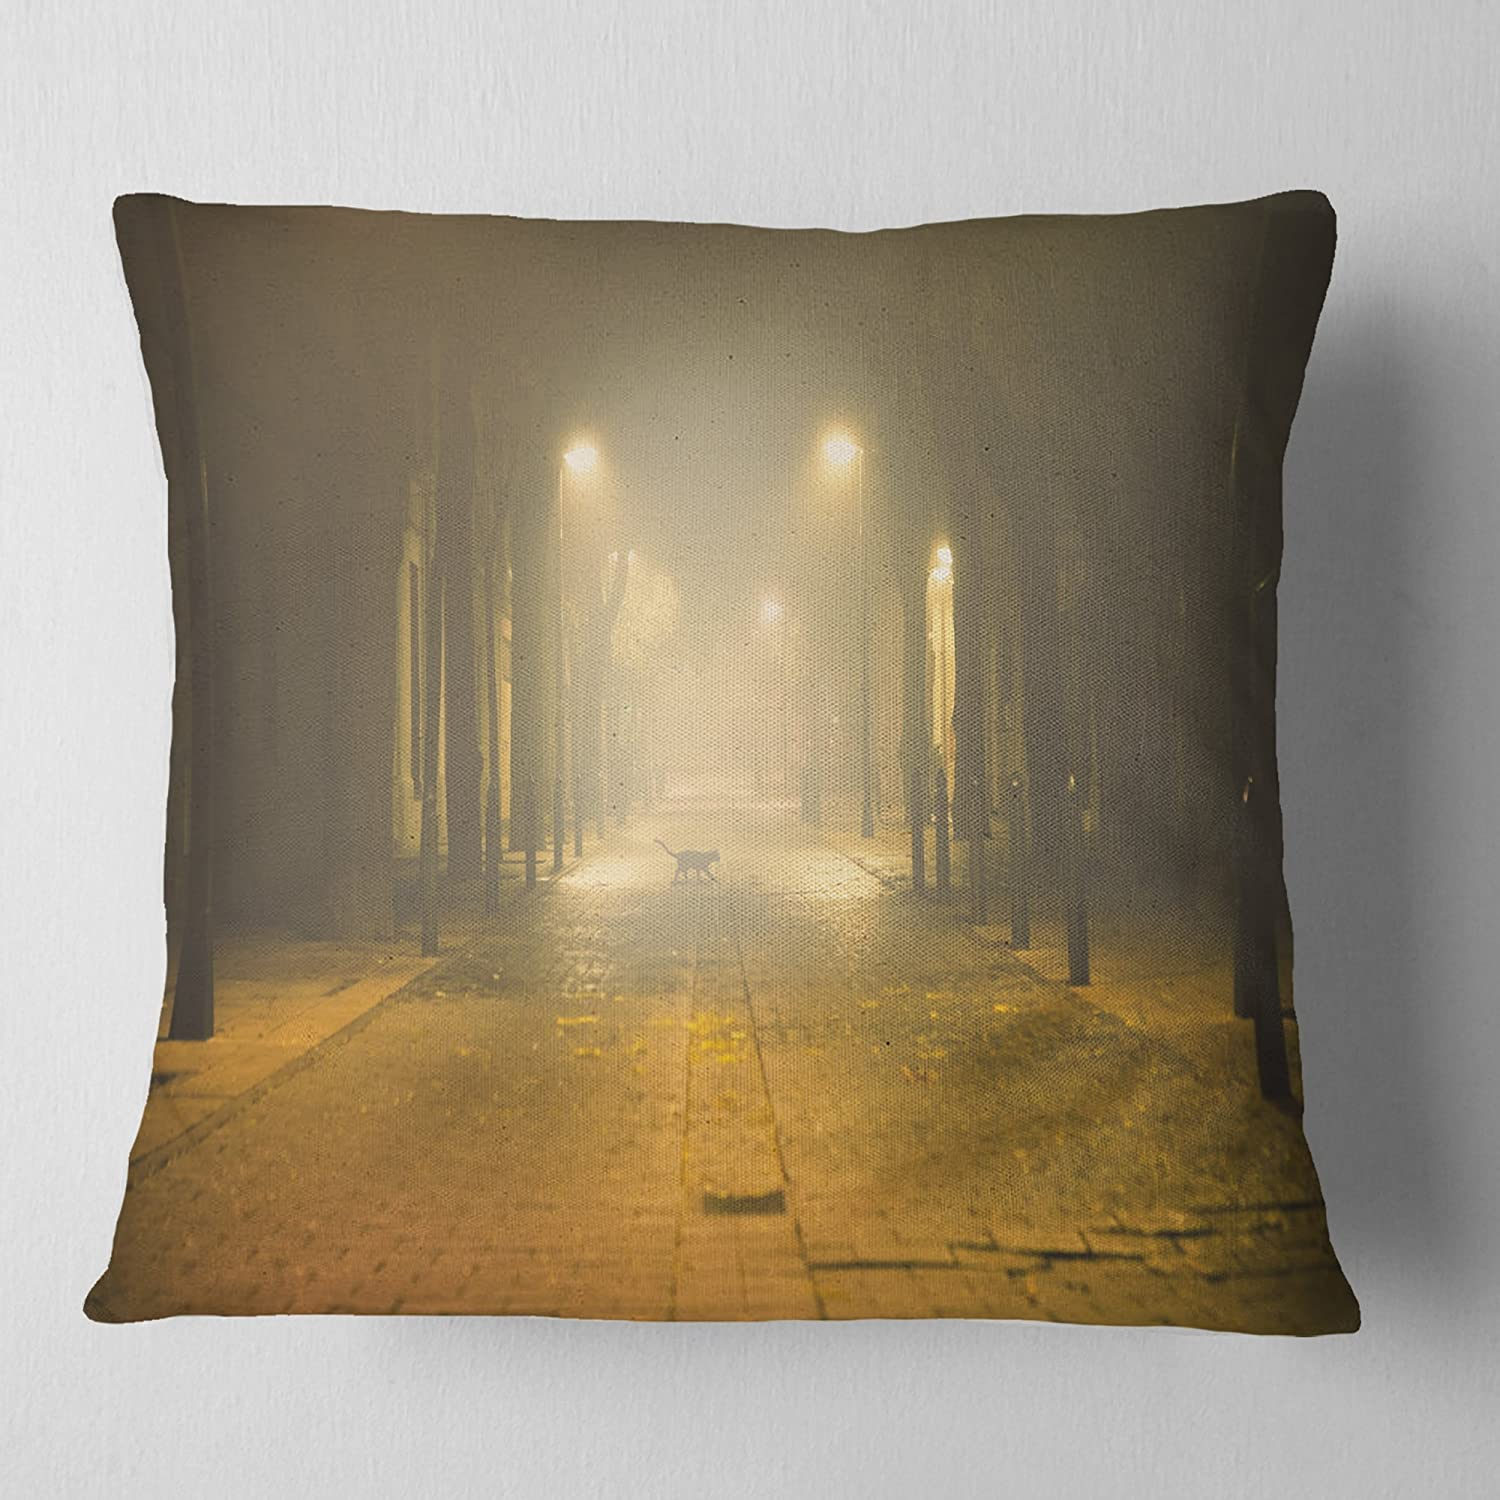 Home Kitchen Designart Cu9406 18 18 Urban Street At Night Landscape Photo Cushion Cover For Living Room X 18 In Sofa Throw Pillow 18 In In Bedding